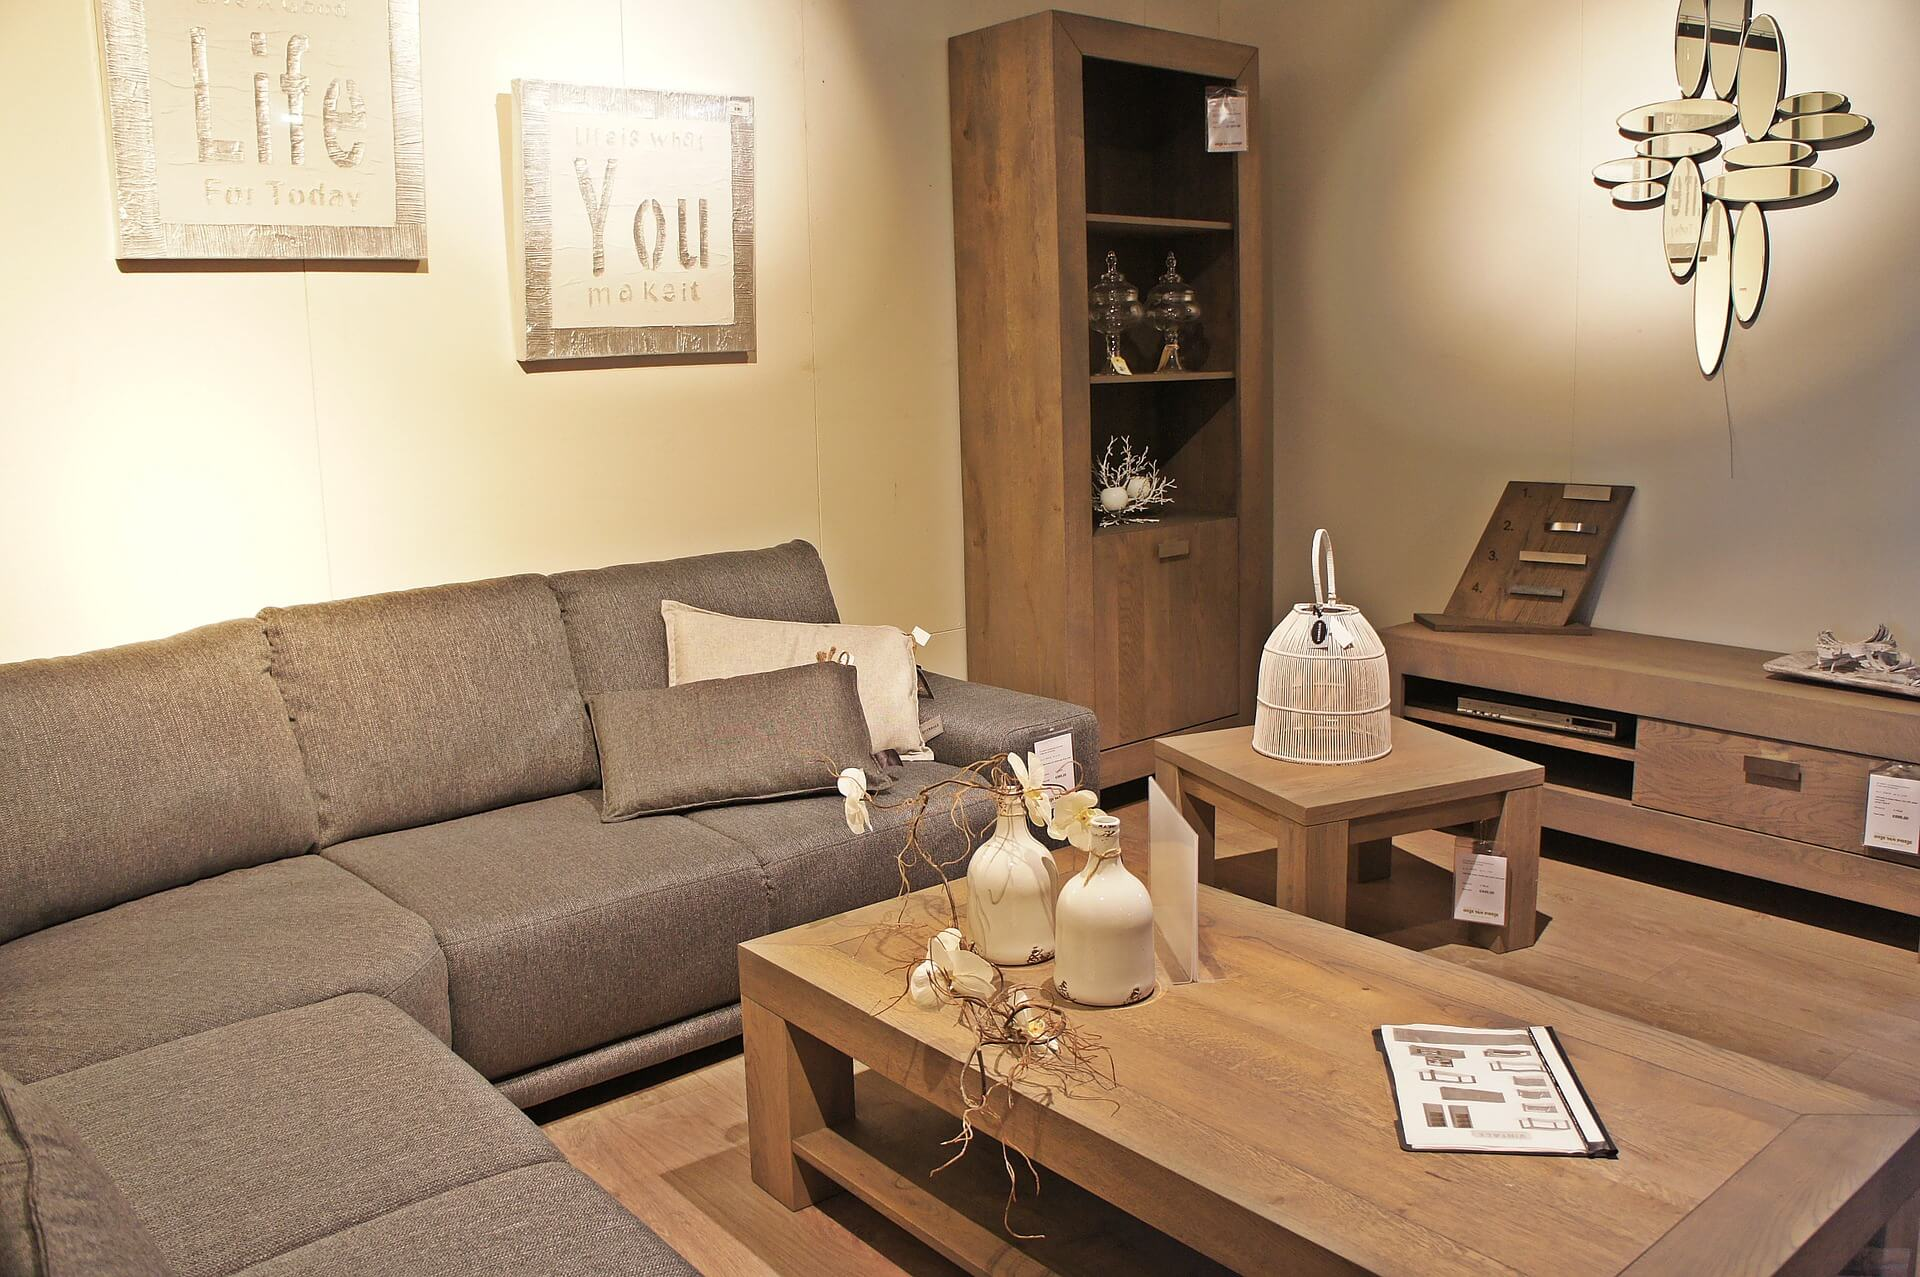 How to maximise storage space in a small room for Living room channel 10 codeword